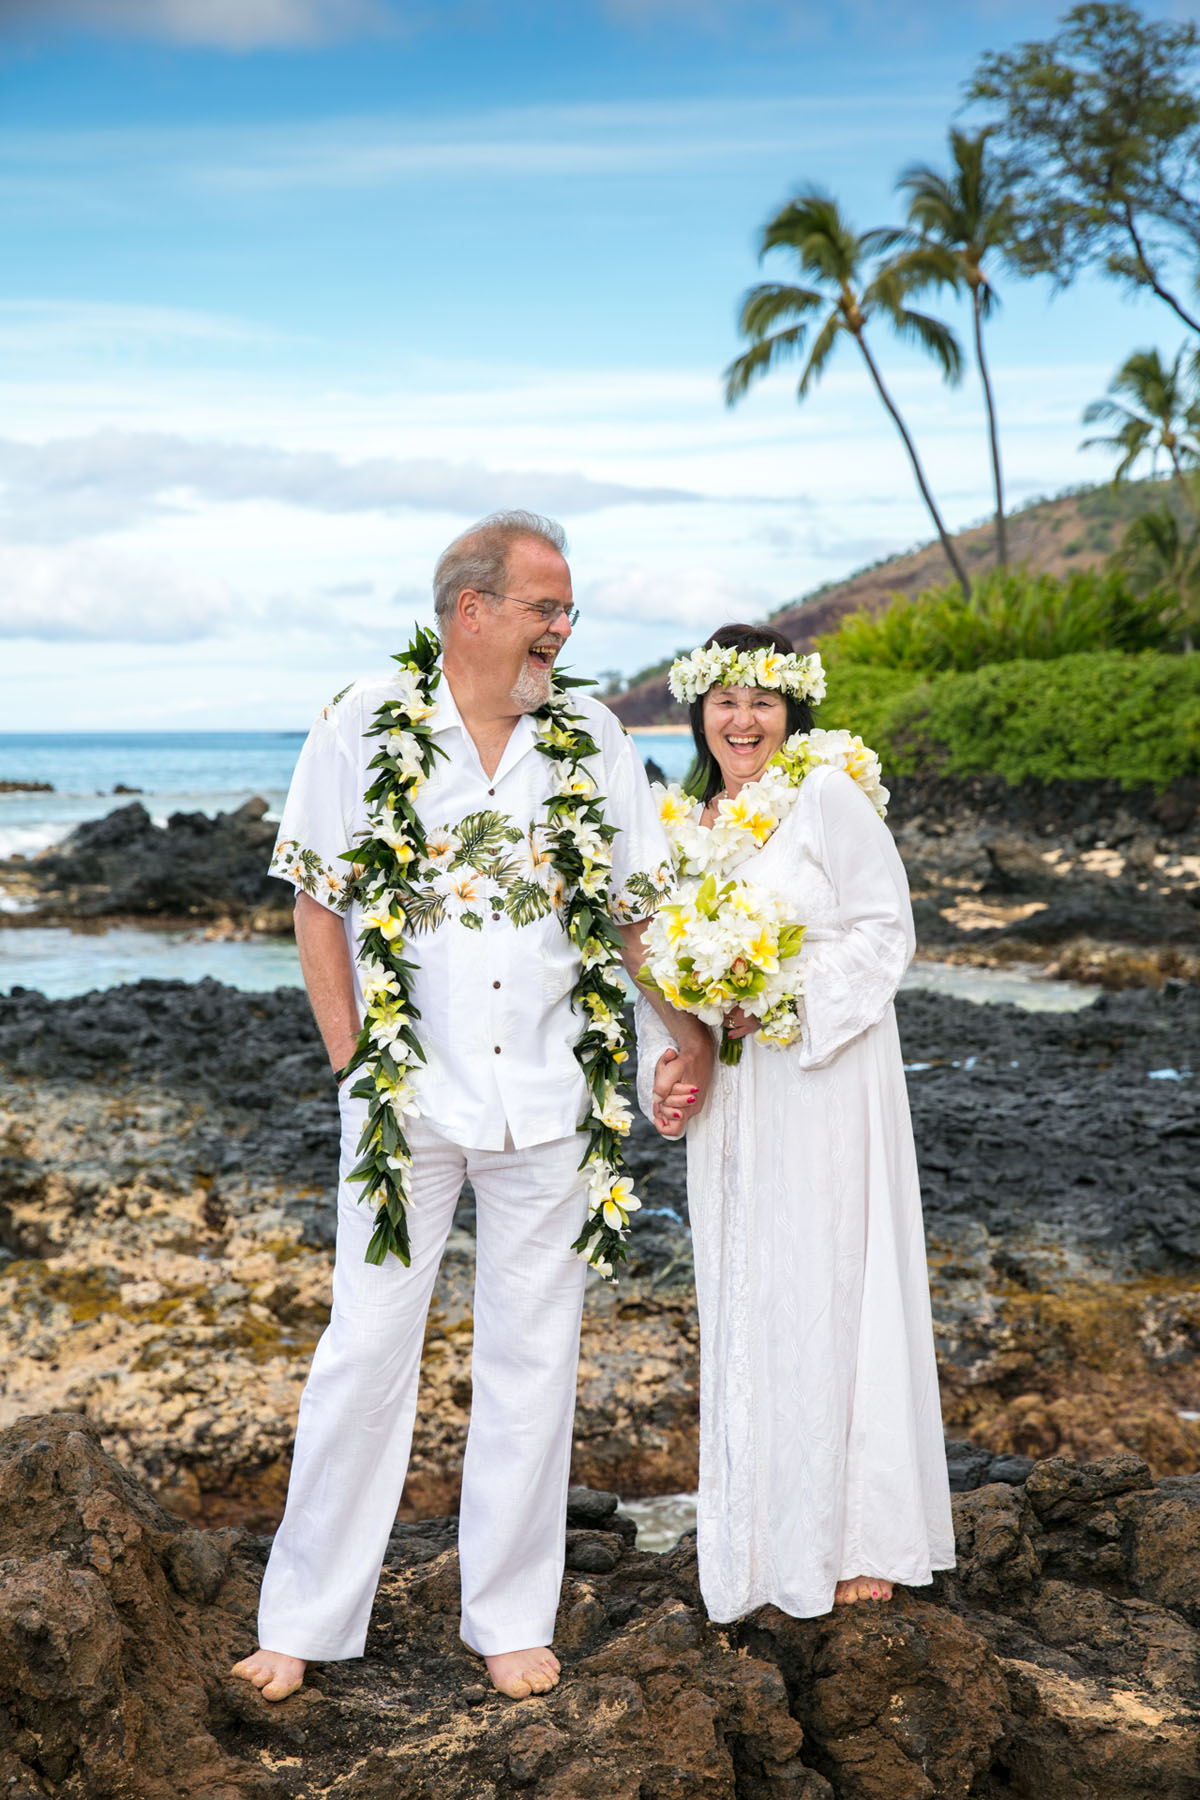 86c0b8df79 We designed a beautiful ceremony complete with some gorgeous florals and  hula. Officiated by Reverend Laki, it was the perfect day for a Maui beach  vow ...